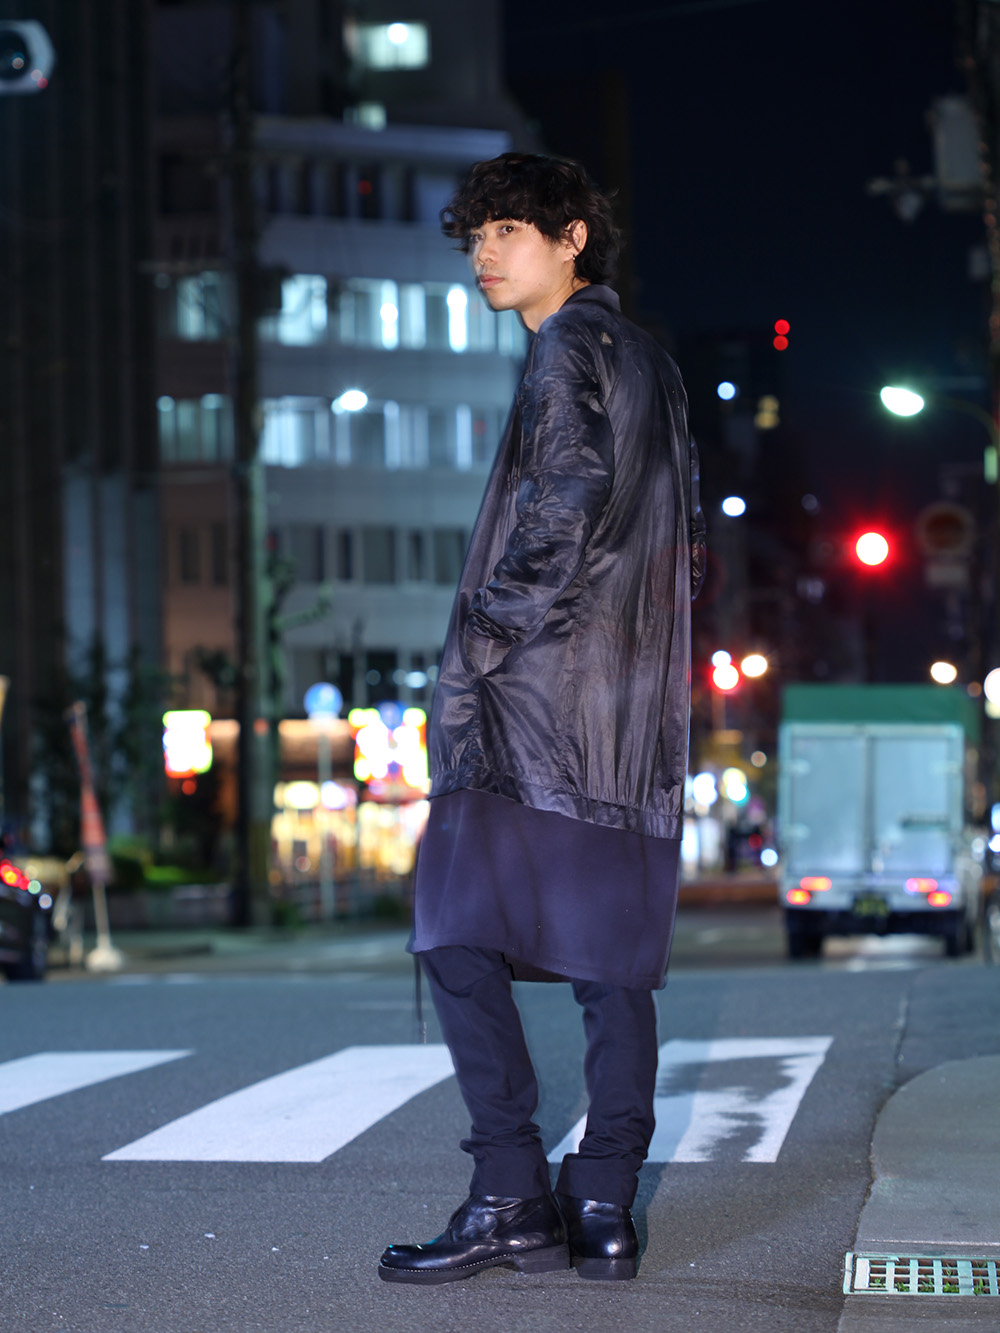 DEVOA 19SS Night Shooting - 1-002